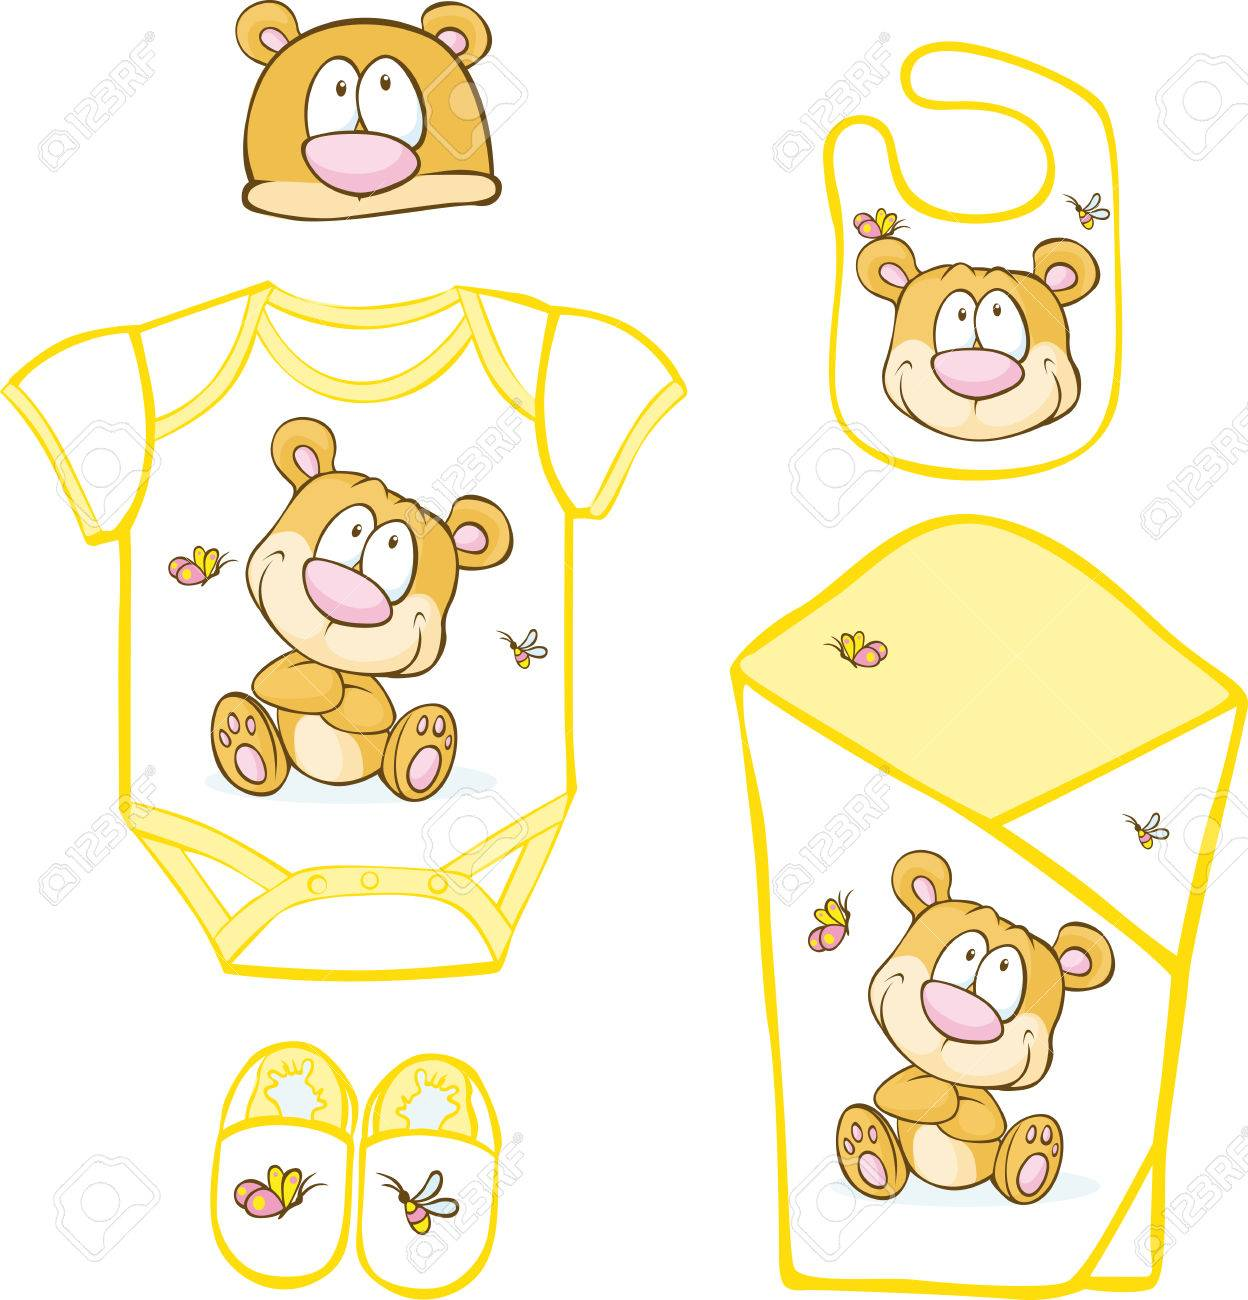 e12ff83c5aa5 Cute Baby Layette With Bear And Butterfly - Vector Illustration ...